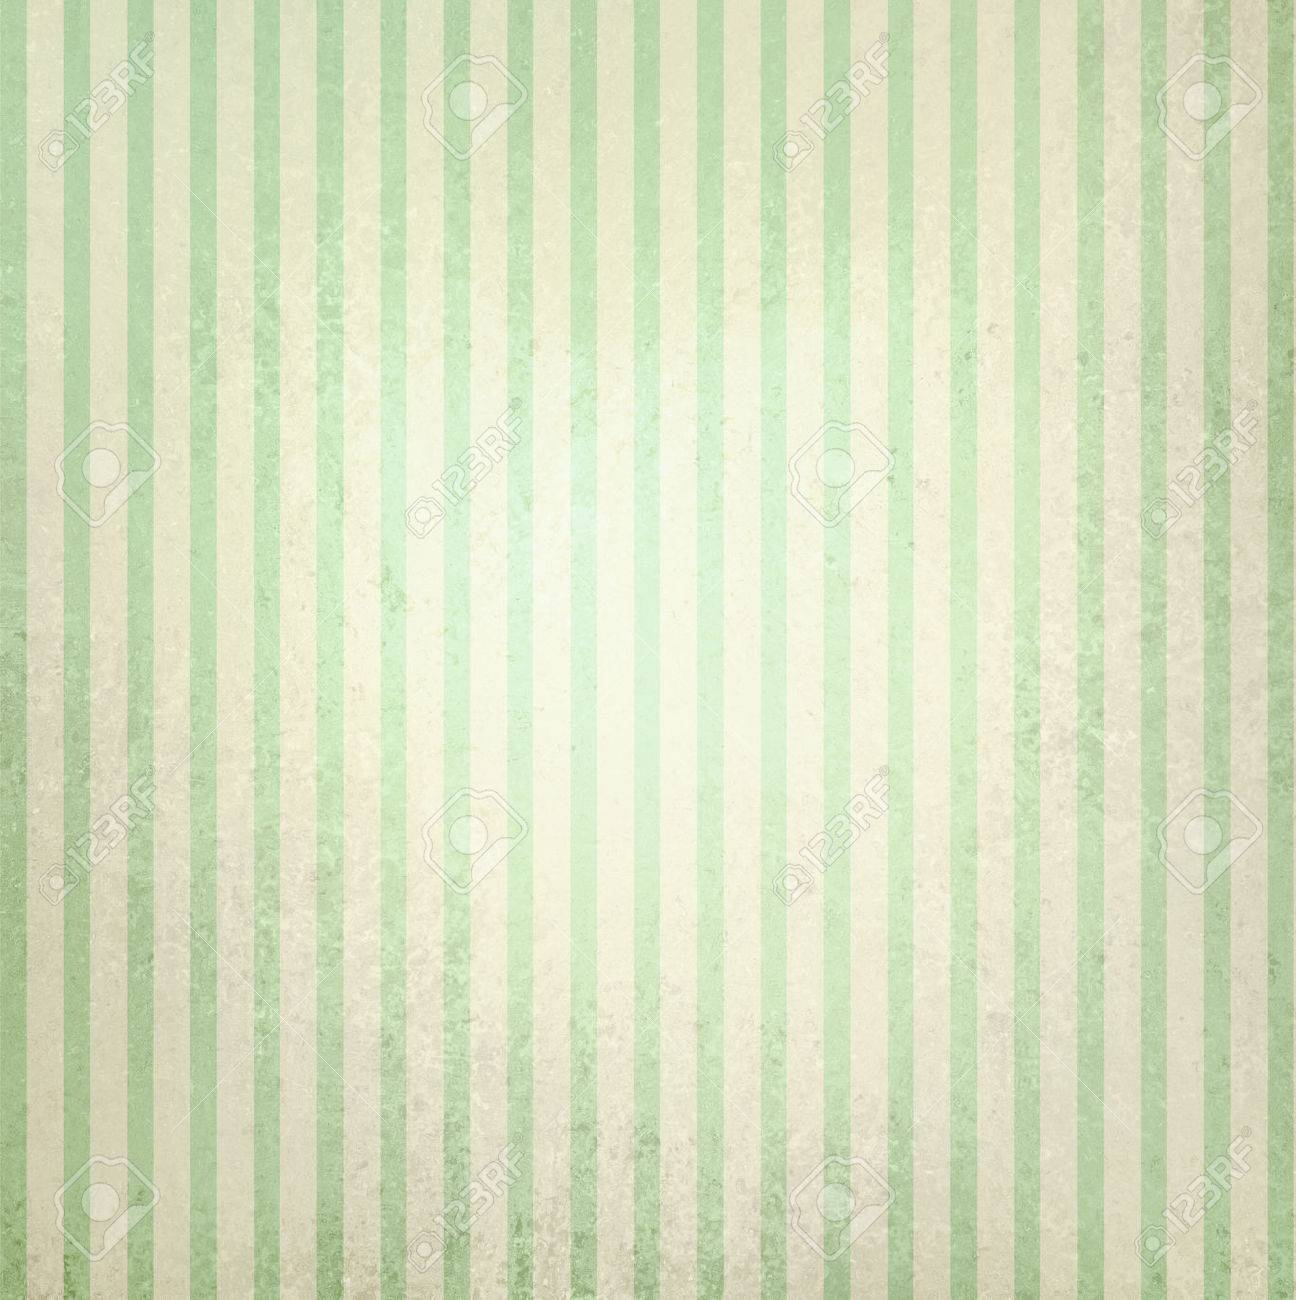 Faded Vintage Green And Beige Striped Background Shabby Chic Line Design Element On Distressed Texture